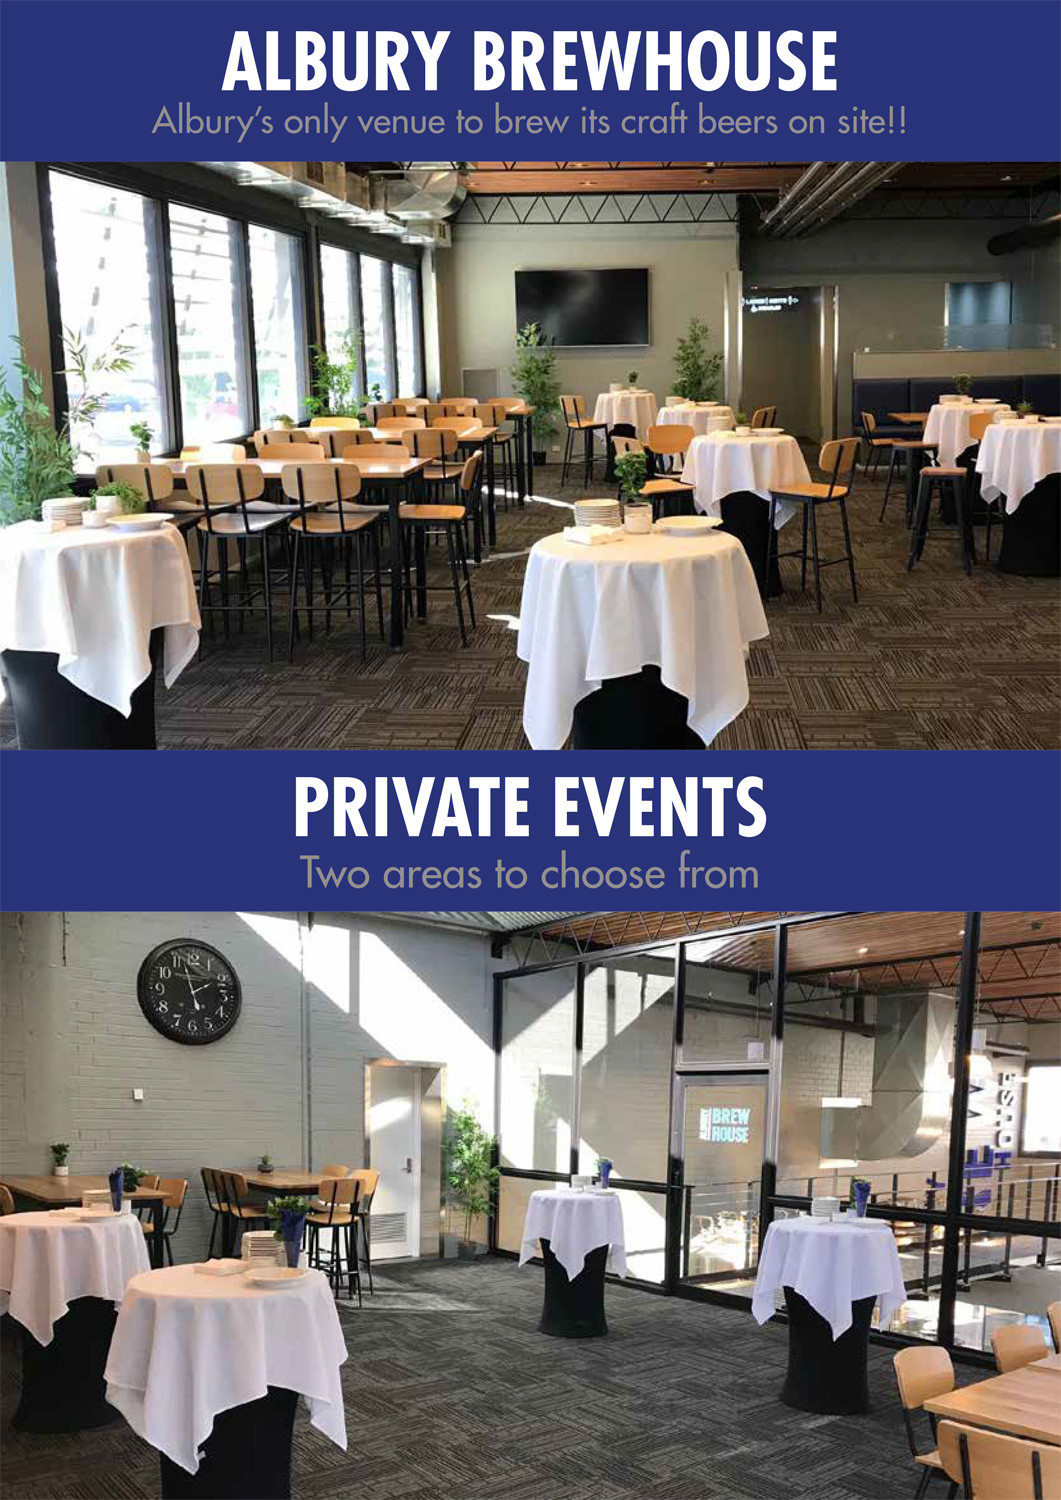 P3_Albury-Brewhouse-Events-Booklet-201903.jpg